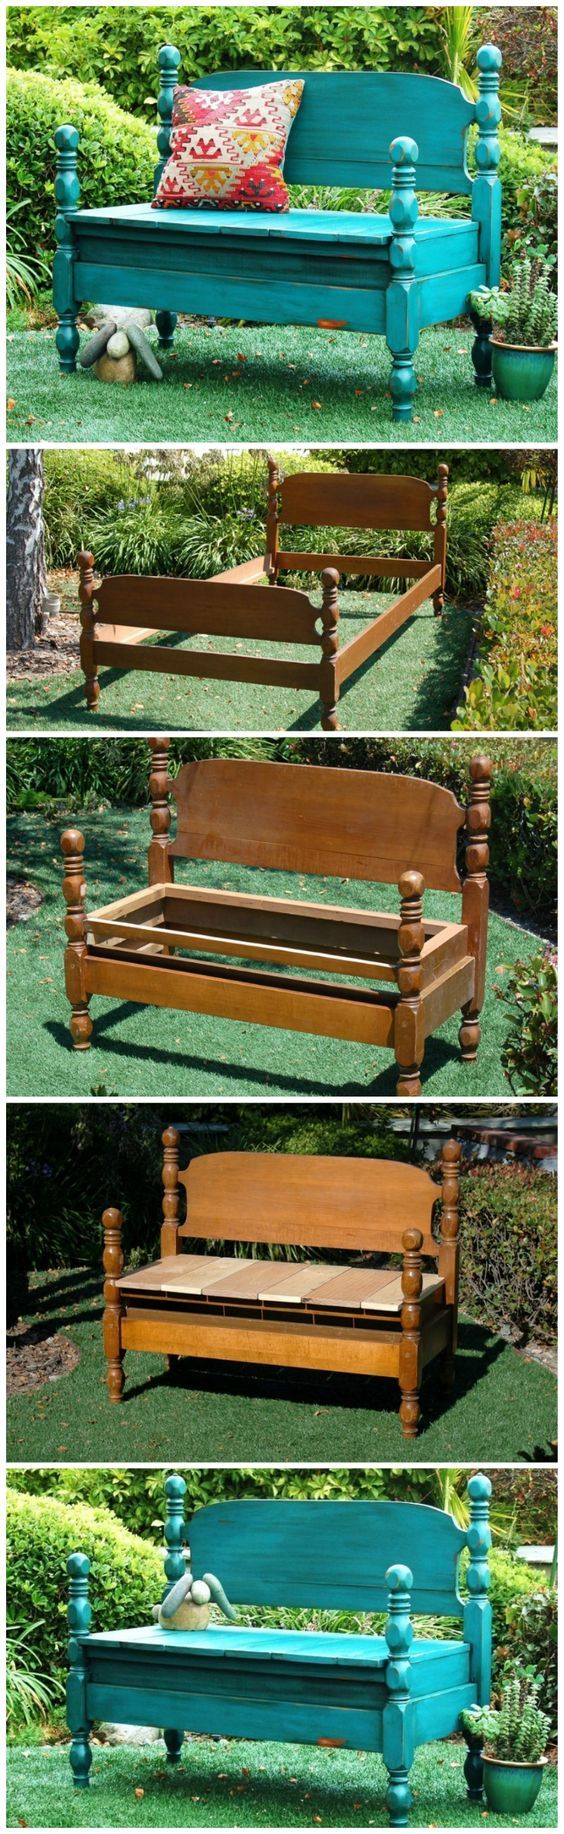 Such a great use of old furniture.